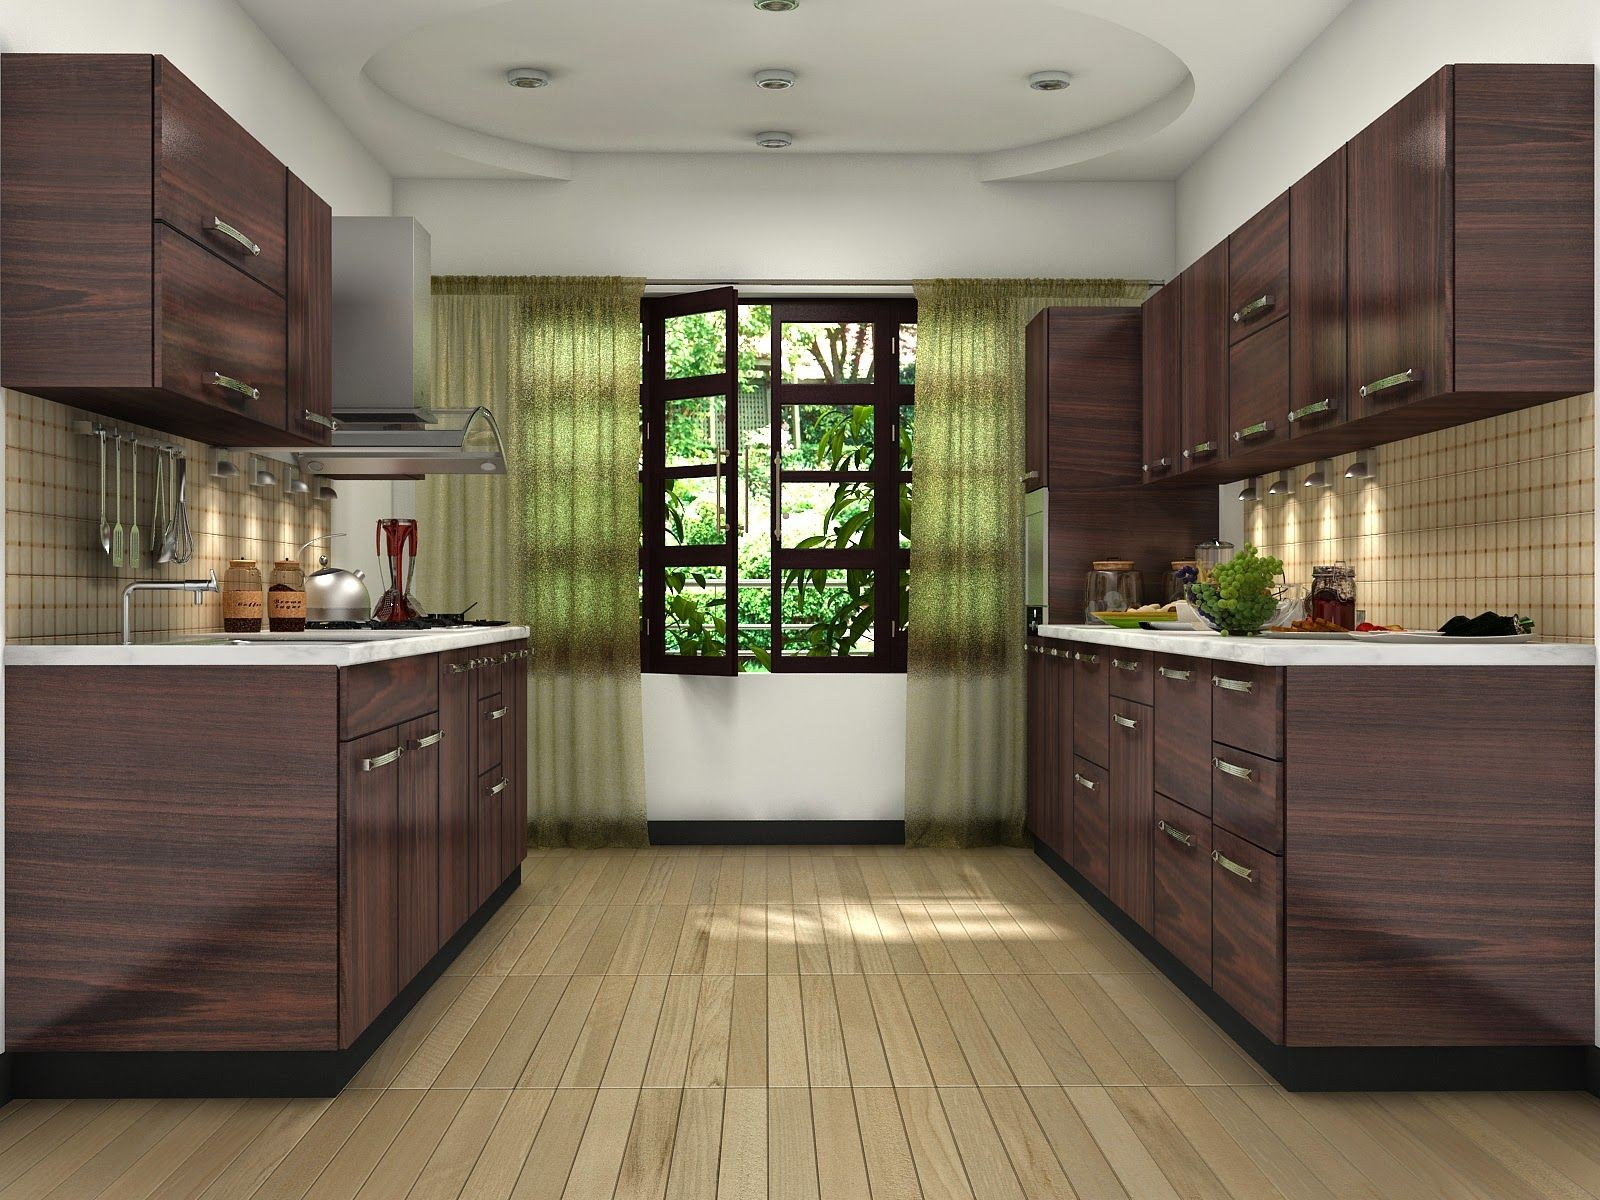 Personalizing your kitchen decor is definitely one of the greatest ways through which you can an enviable image